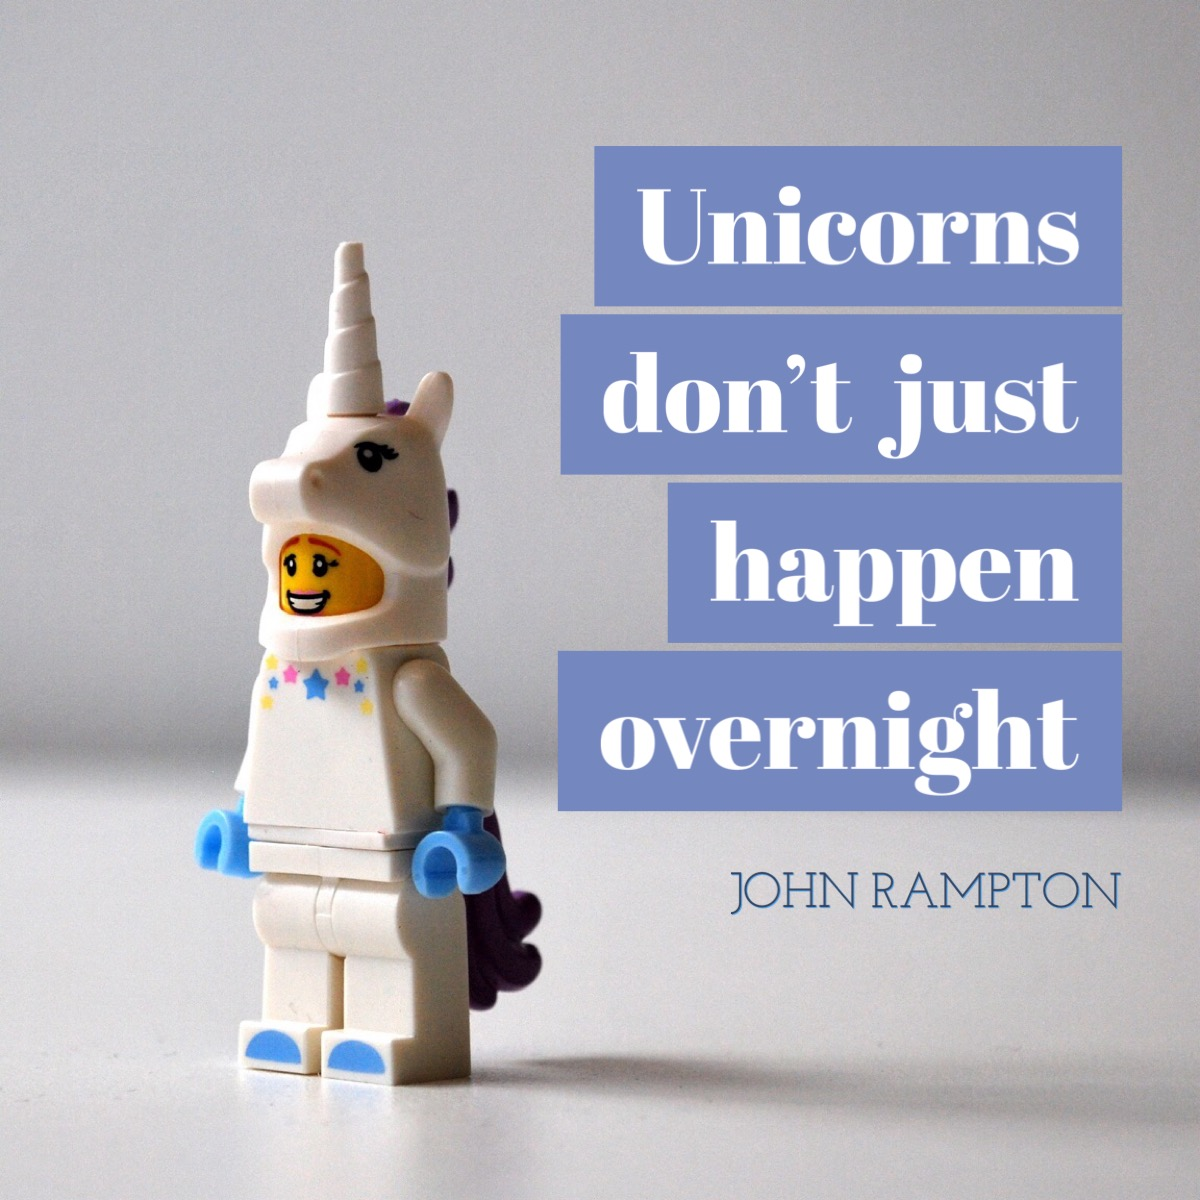 Unicorns don't just happen overnight